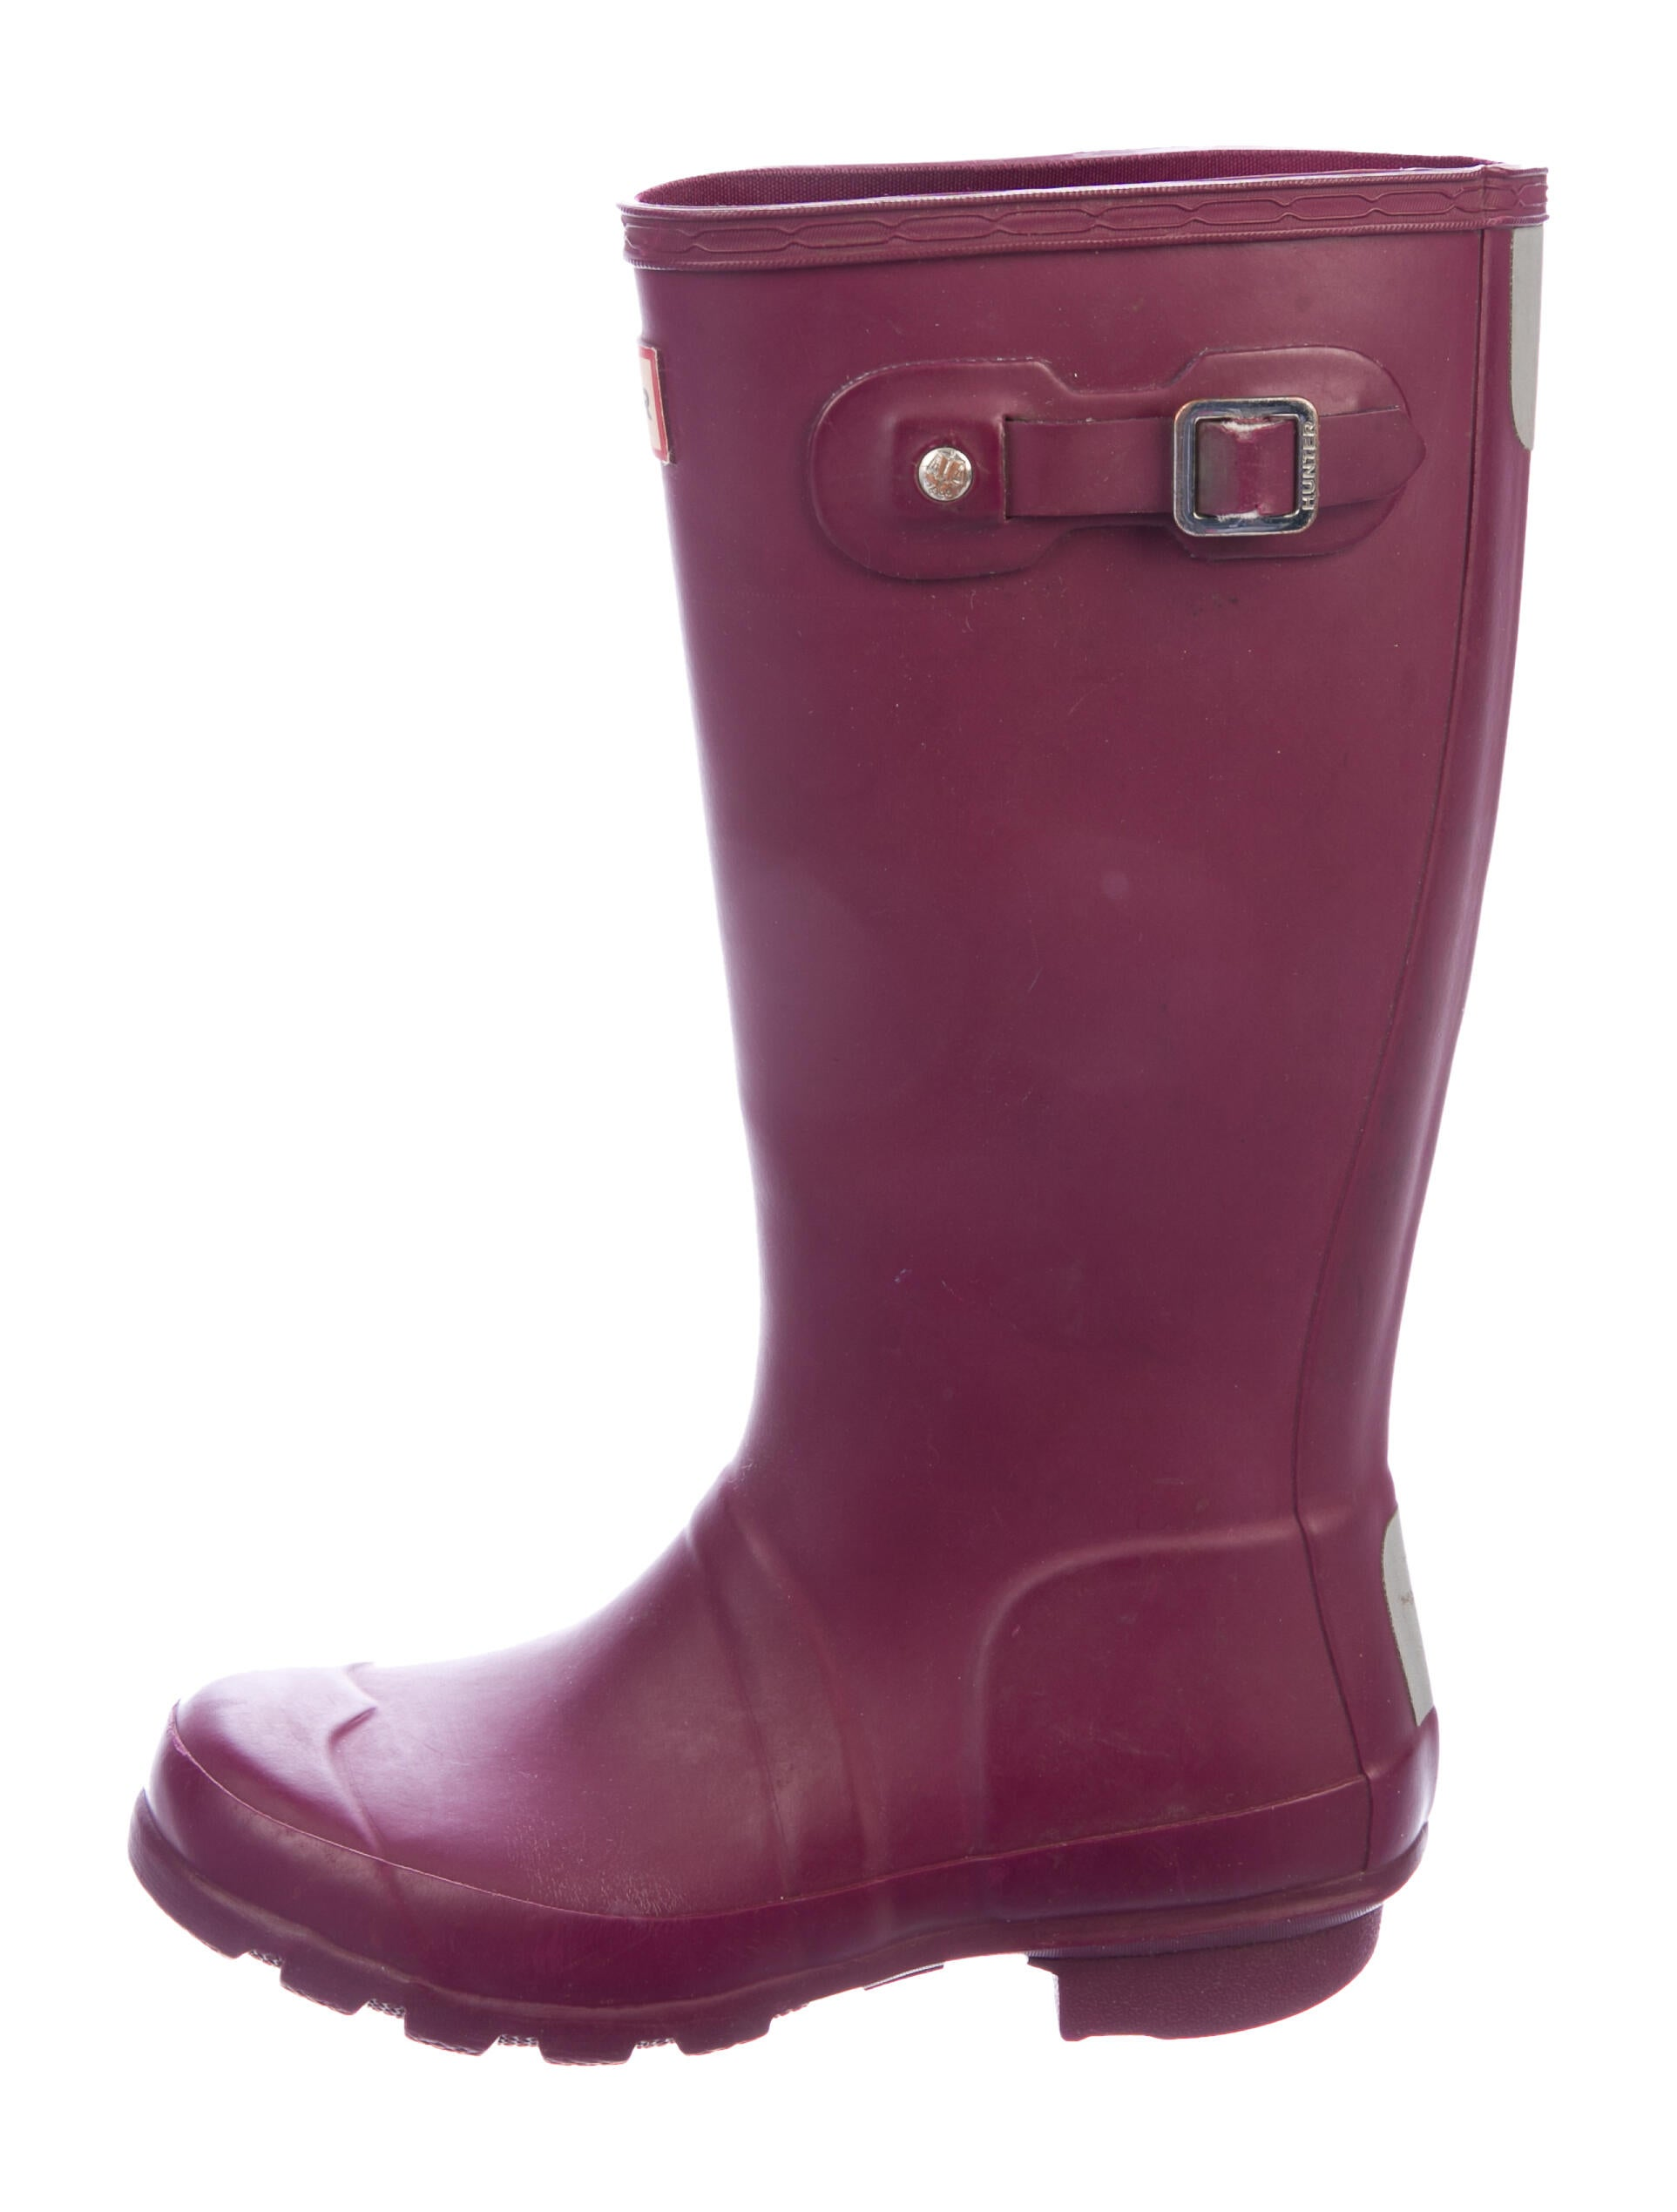 unbrand Girls Basic Colorblock Rain Boot, Size 9, Pink